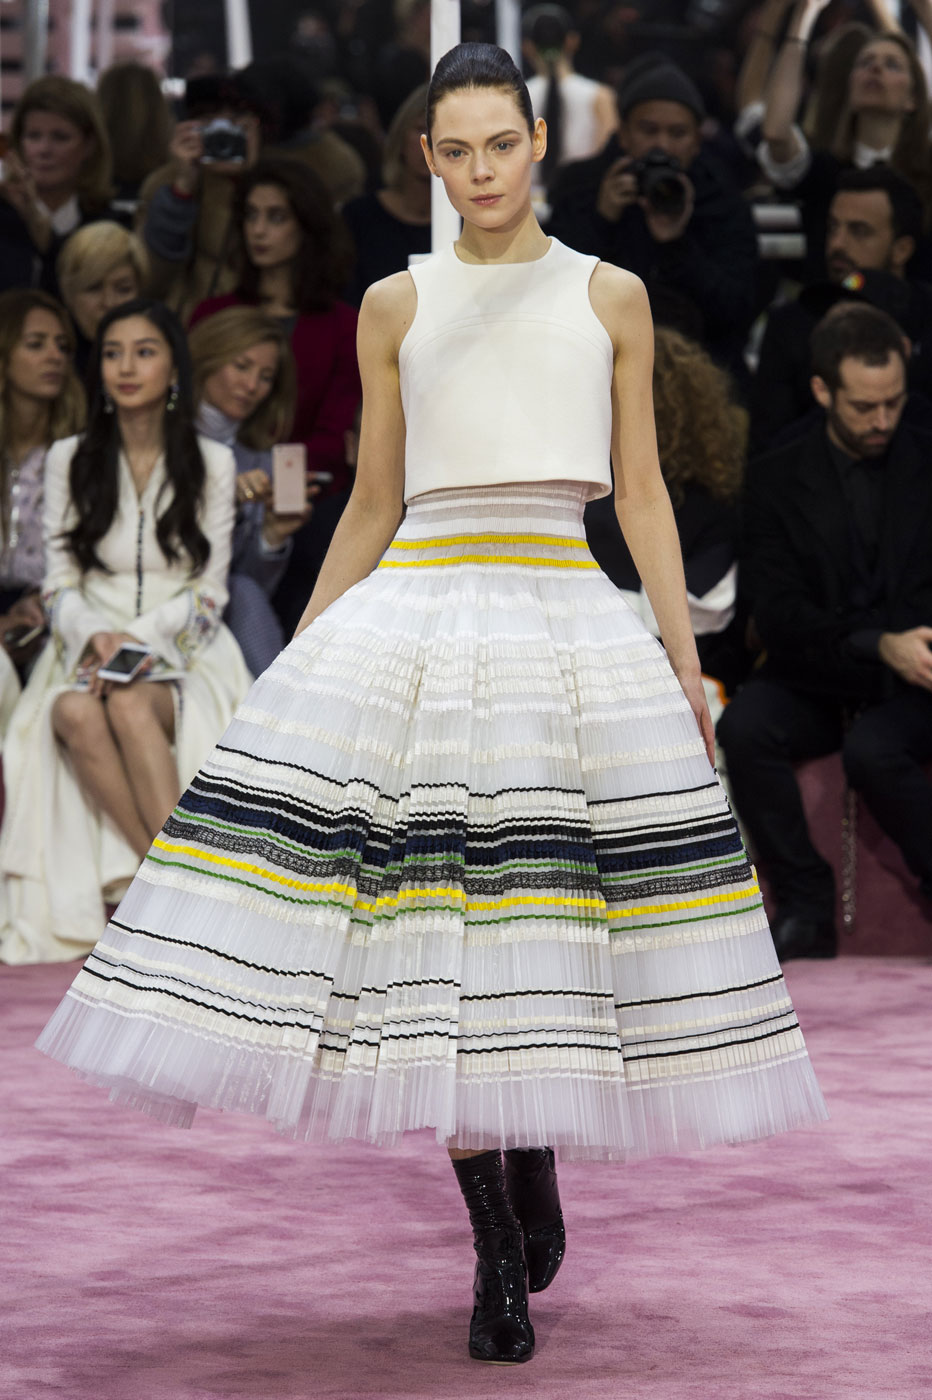 Christian-Dior-fashion-runway-show-haute-couture-paris-spring-summer-2015-the-impression-108